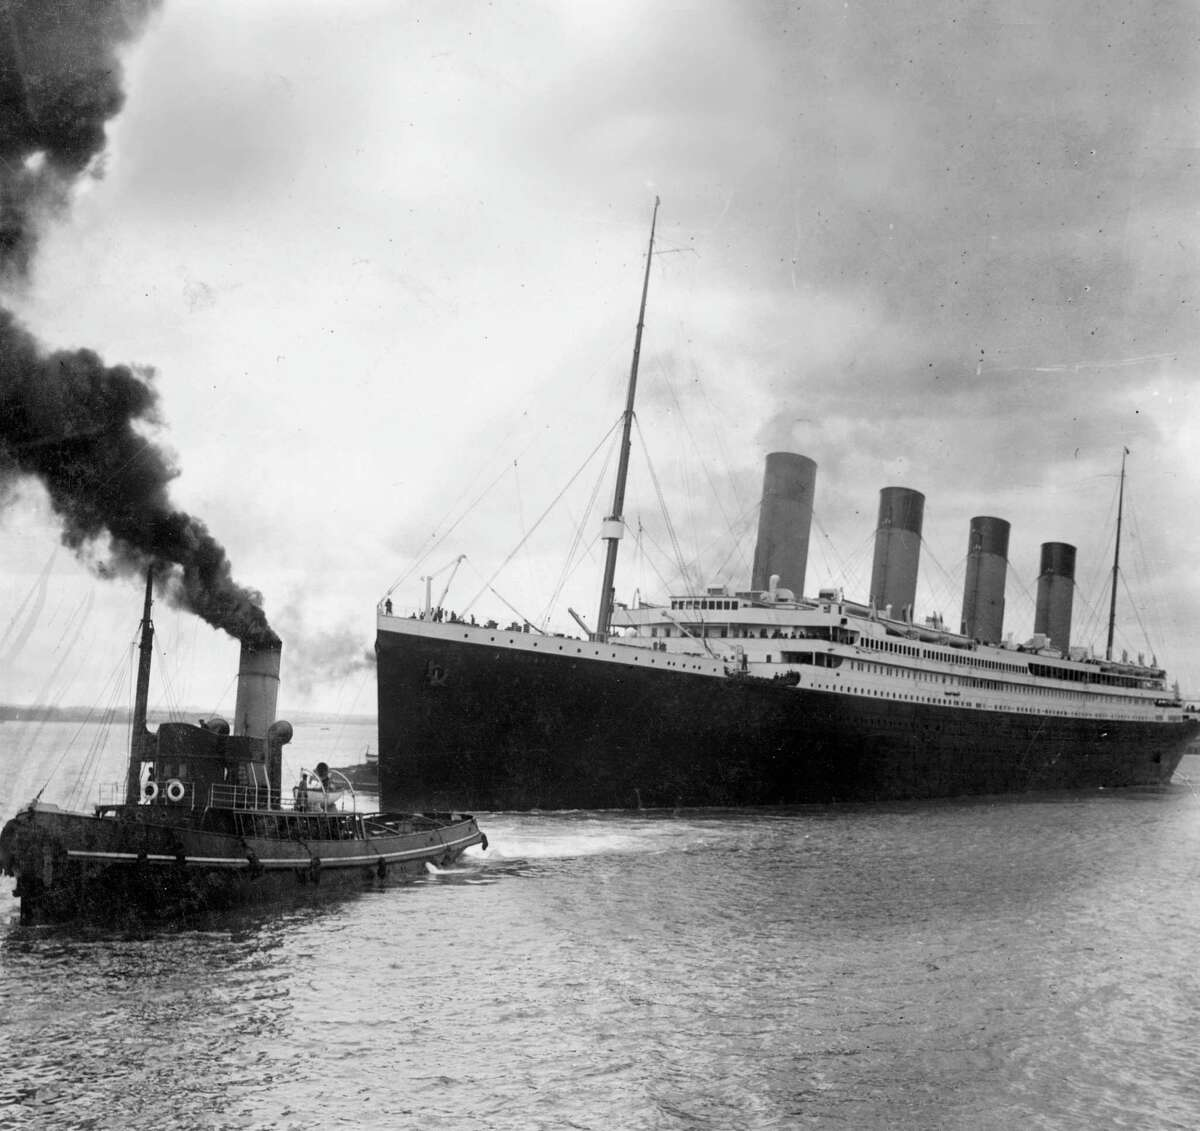 For more than 100 years, people have been fascinated with the Titanic, it's luxury and its sinking. In 2012, several cities around the world unveiled commemorative exhibits and memorials. More than 1,500 people died in the tragedy with 549 of them residents of Southampton, England, the Titanic's departure city. Through the years, there have been several publicized plans to build a replica including an Australian businessman who last year shared his blue prints of a full-size replica that he intended to allow passengers to purchase cabins on its maiden cruise in 2016.